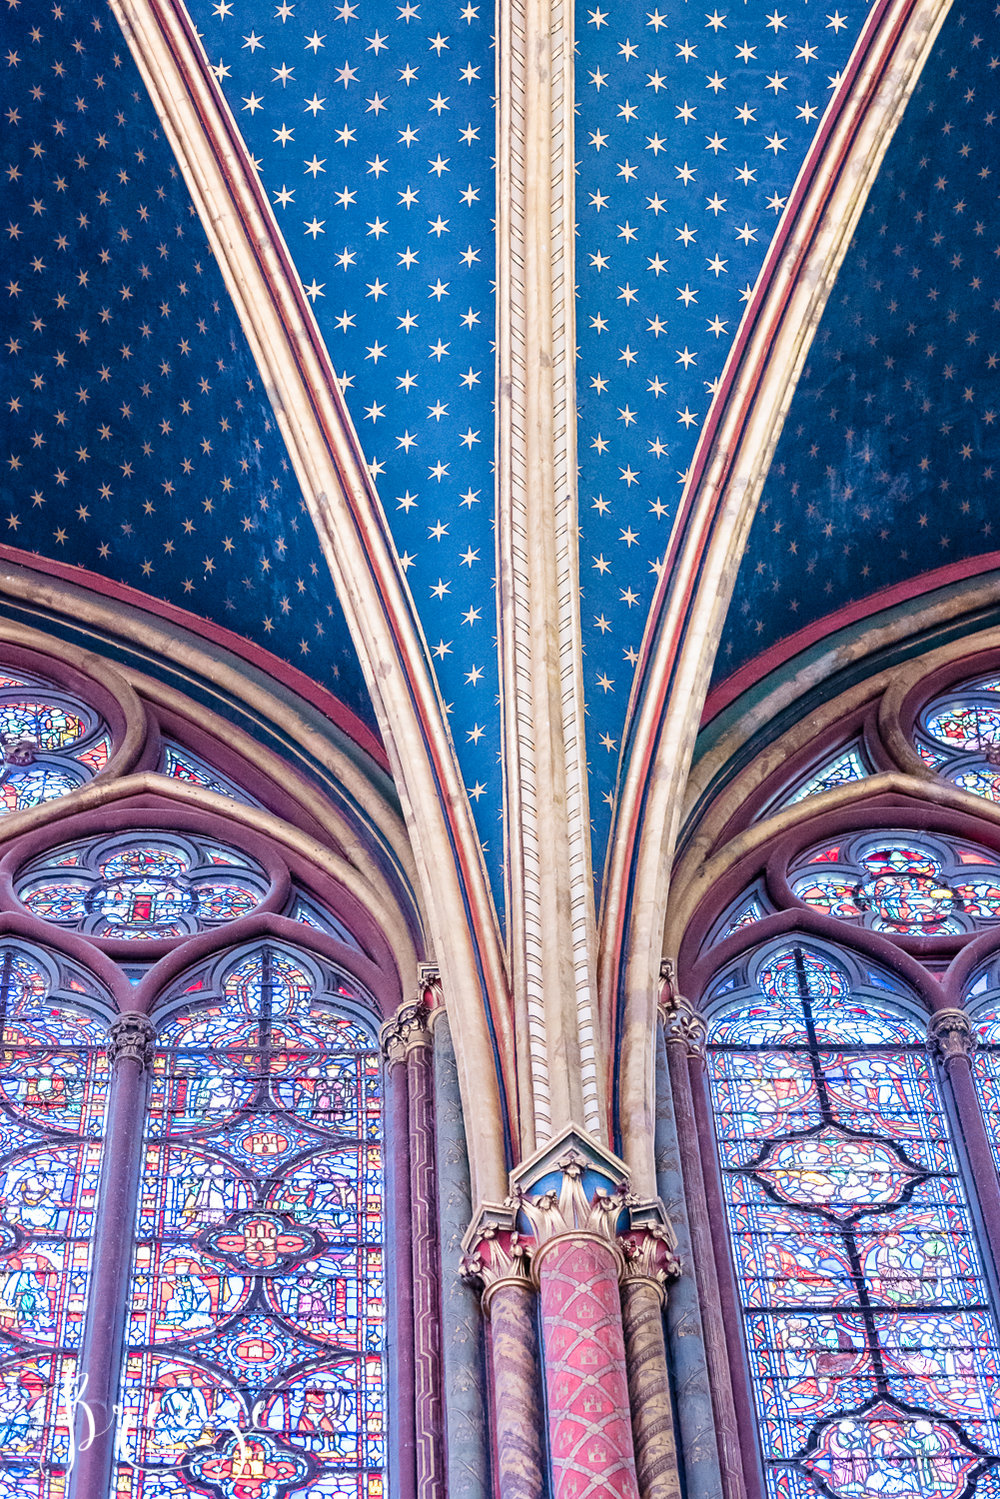 Sainte_Chapelle_Windows_Stars.jpg